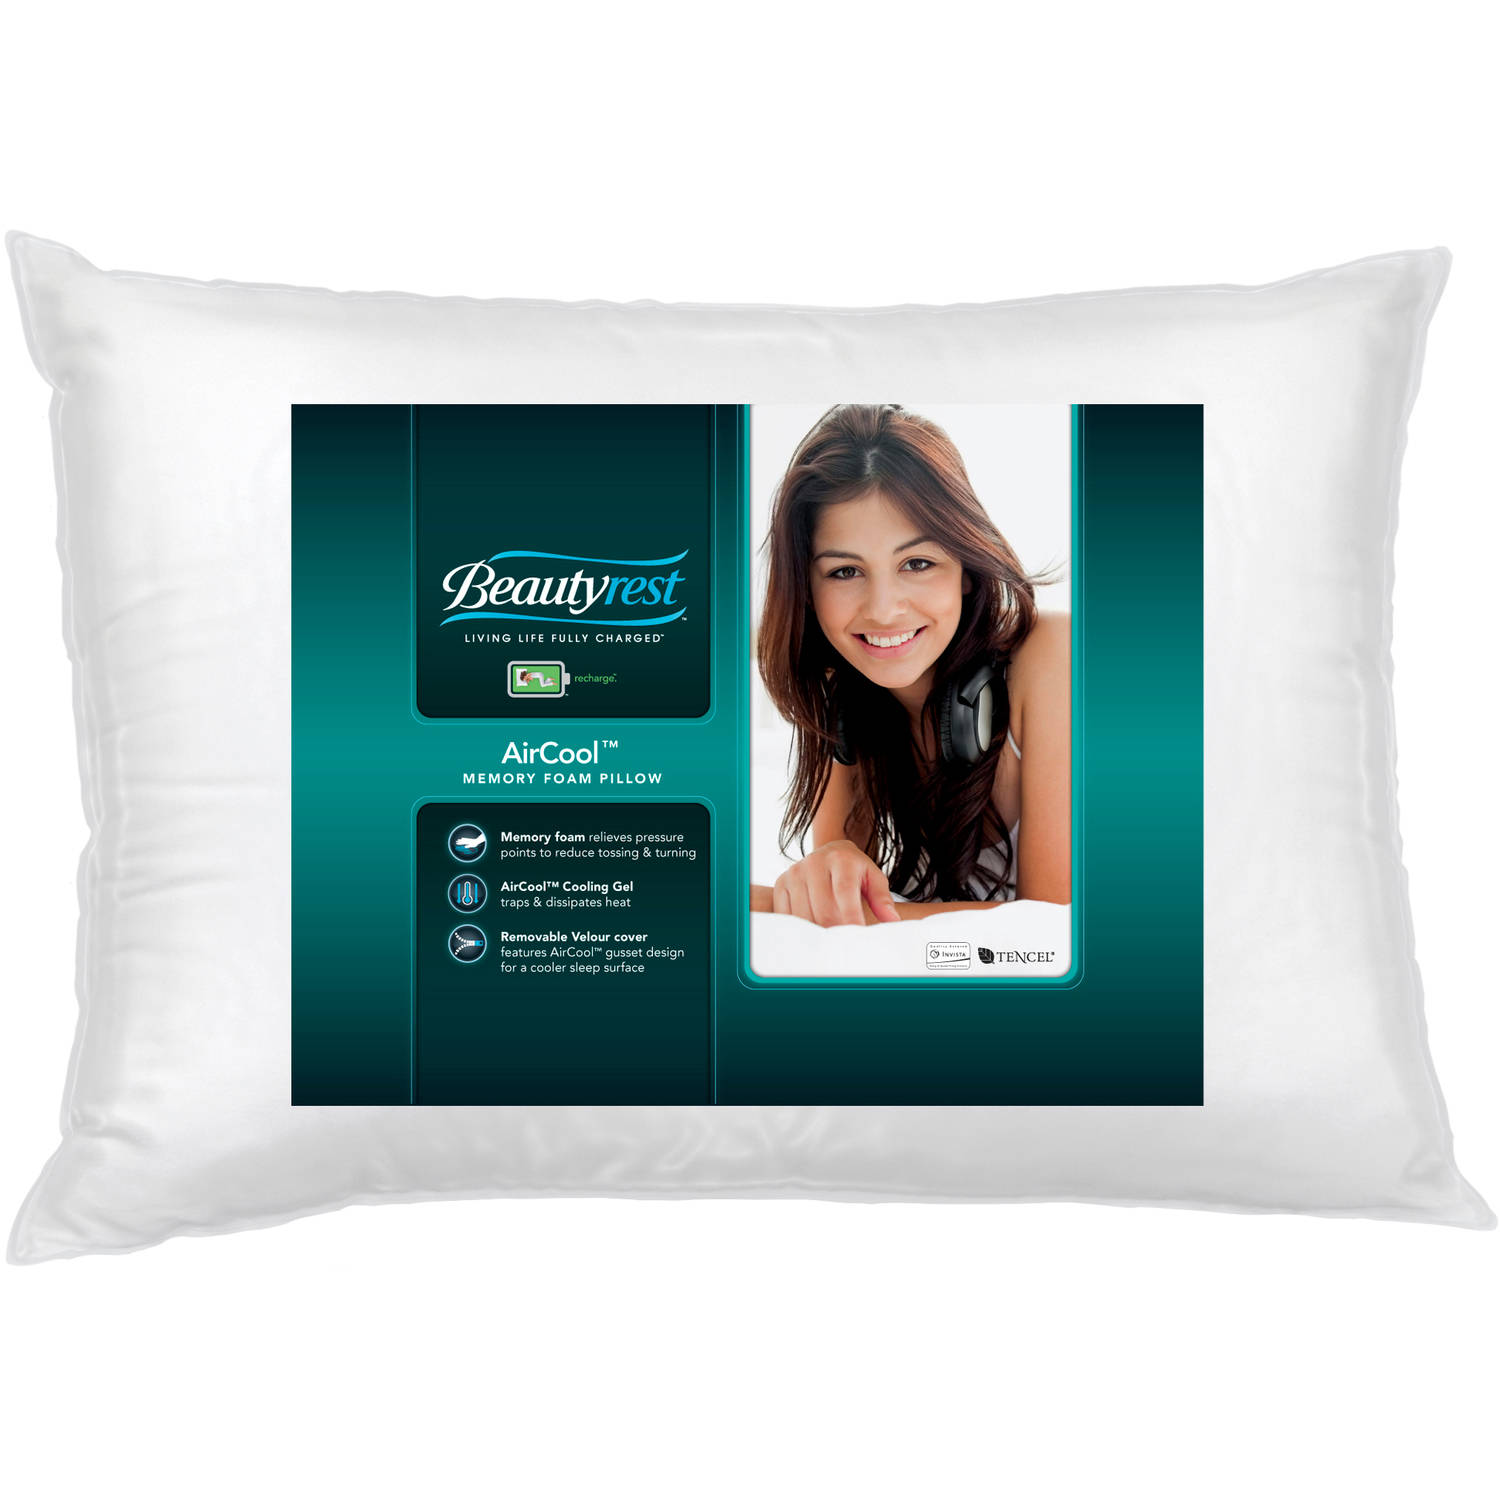 Beautyrest Air Cool Gel Pillow with Removable Cover